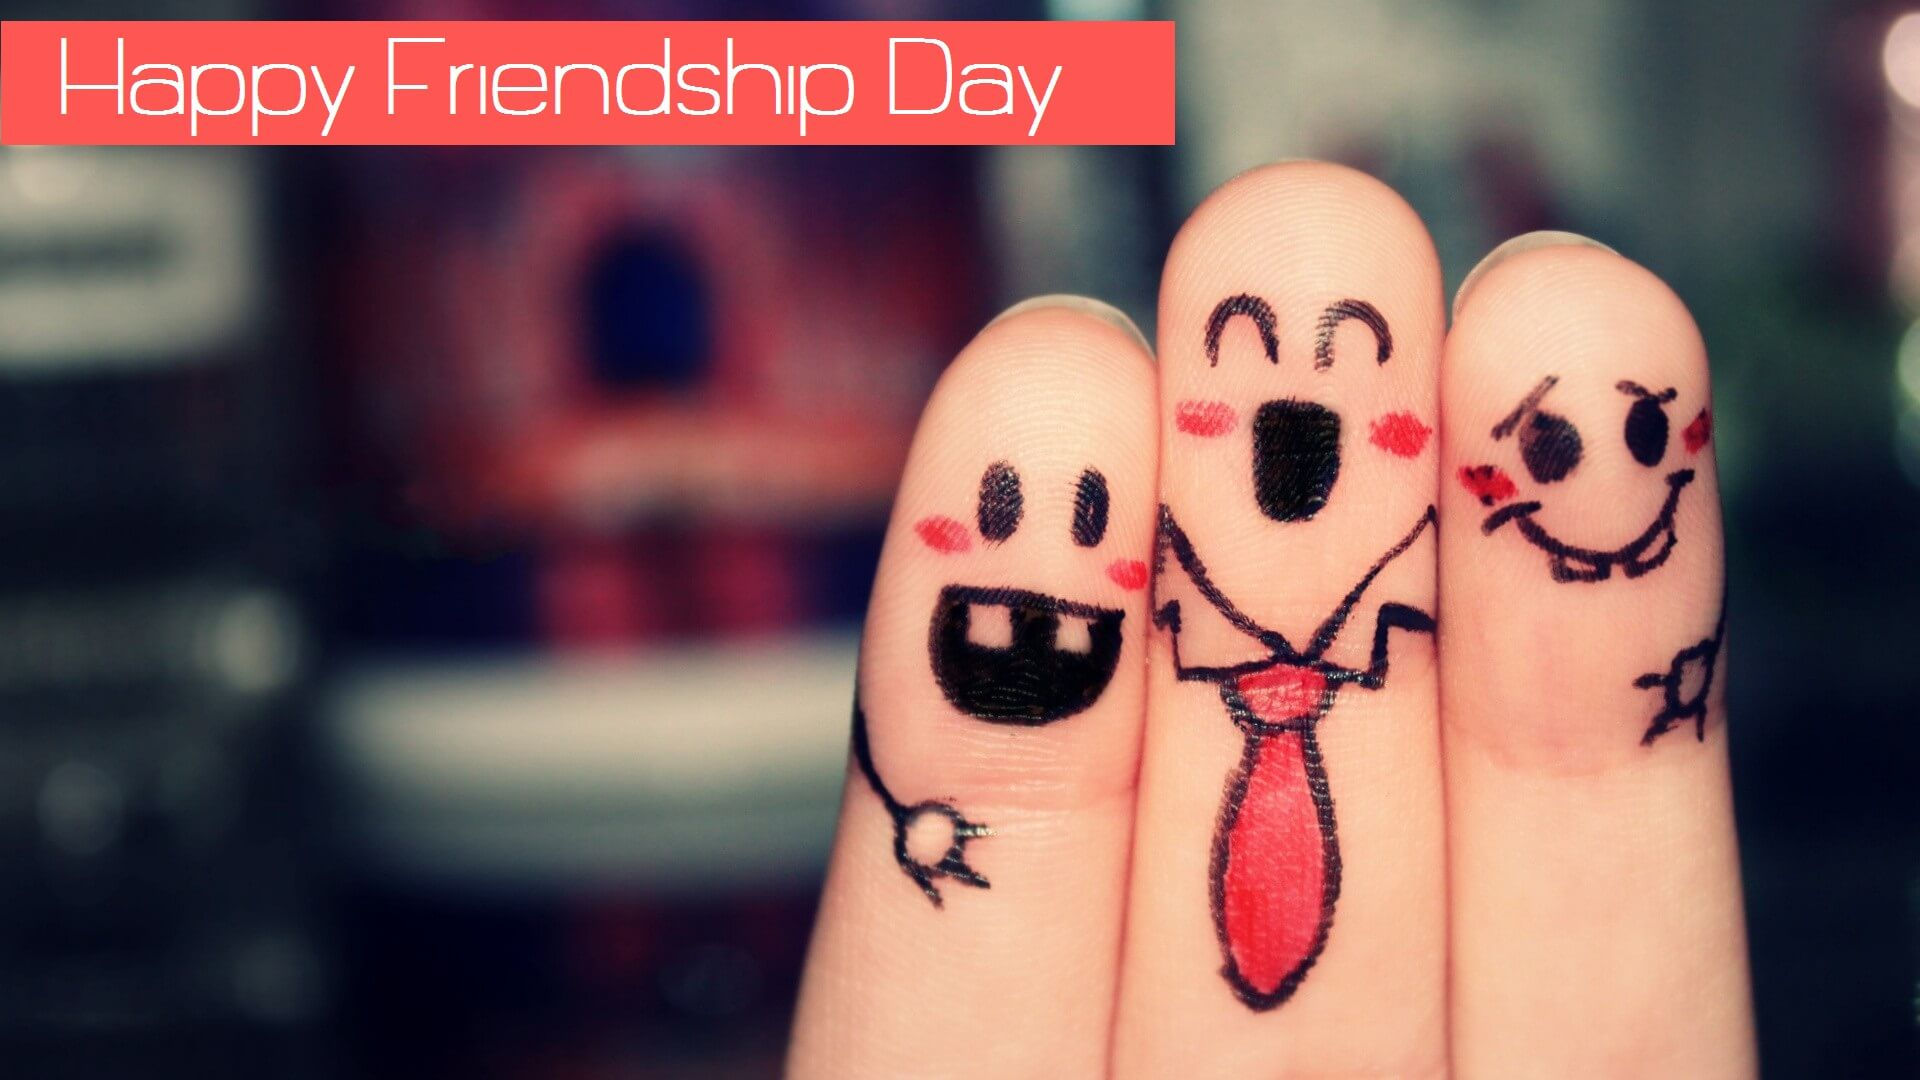 happy friendship day 2018 HD wallpaper images